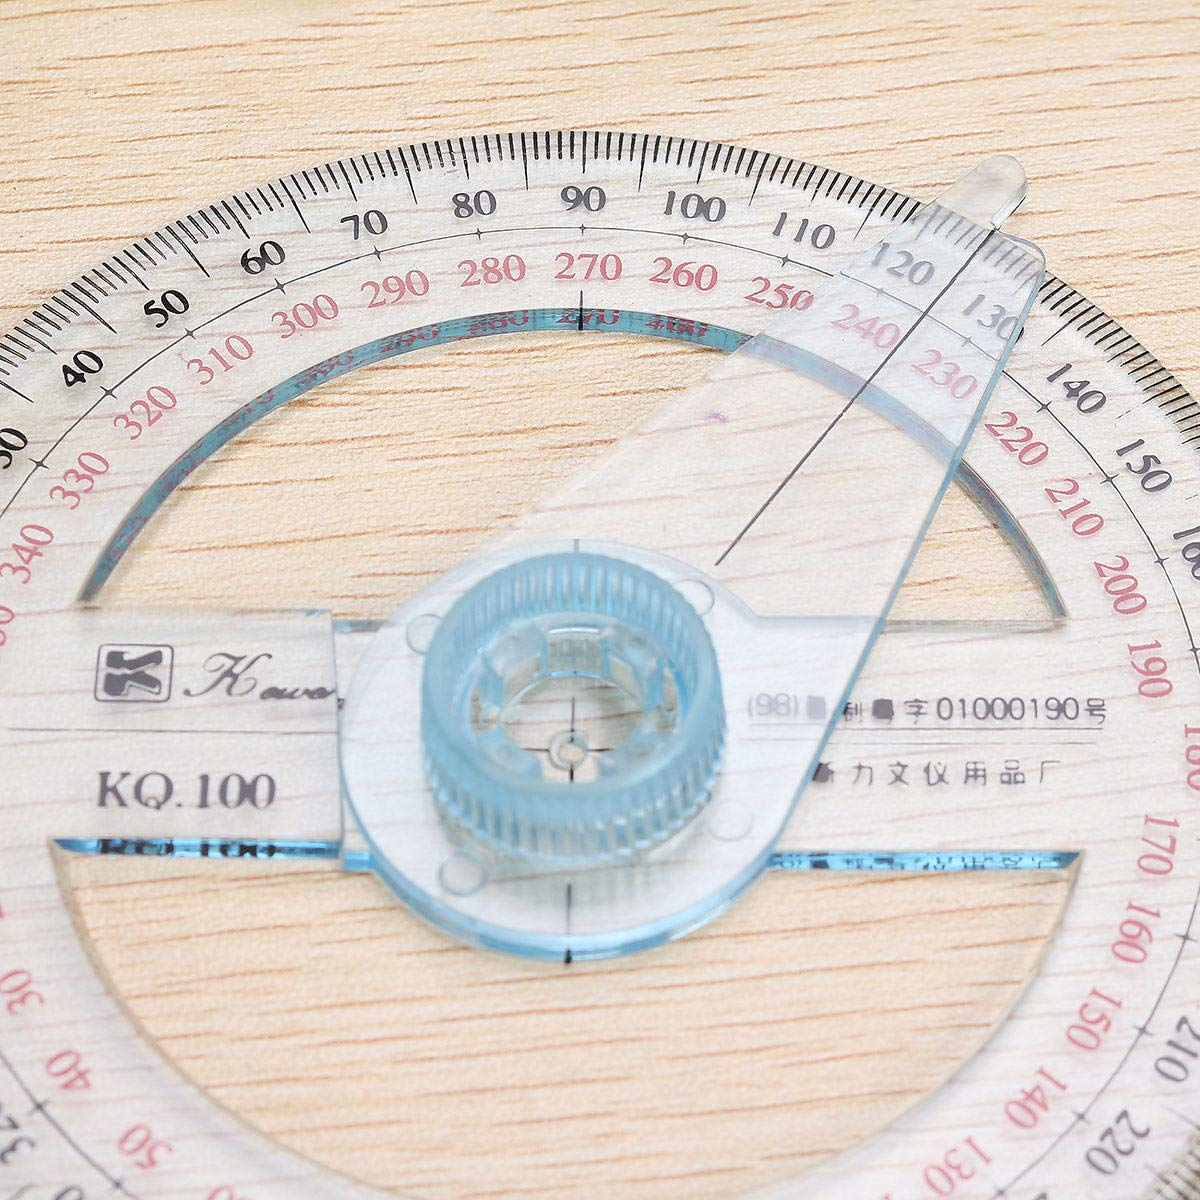 10cm Plastic 360 Degree Protractor Ruler Angle Finder Swing Arm School Office by Anddoa (Image #4)